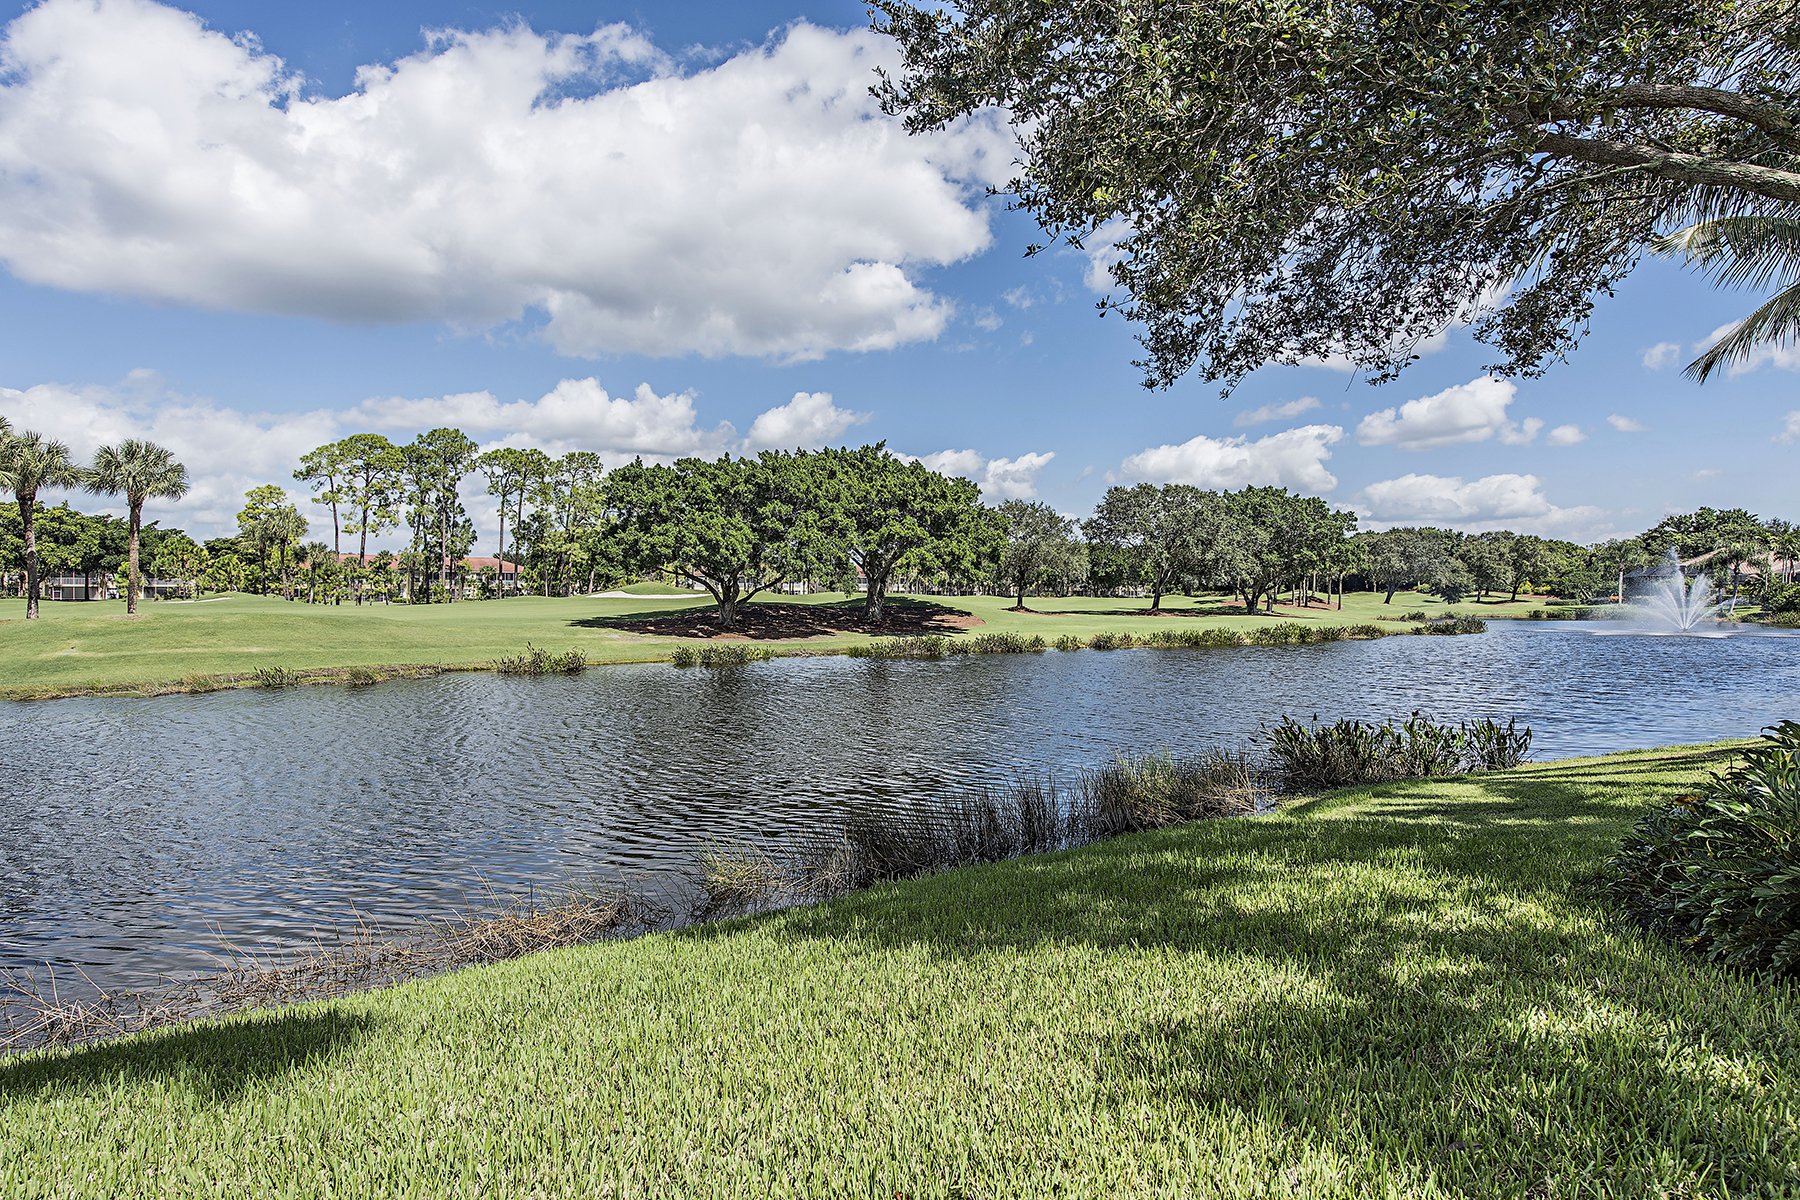 Single Family Home for Sale at PELICAN MARSH - WATERCREST 2337 Cheshire Ln Naples, Florida, 34109 United States